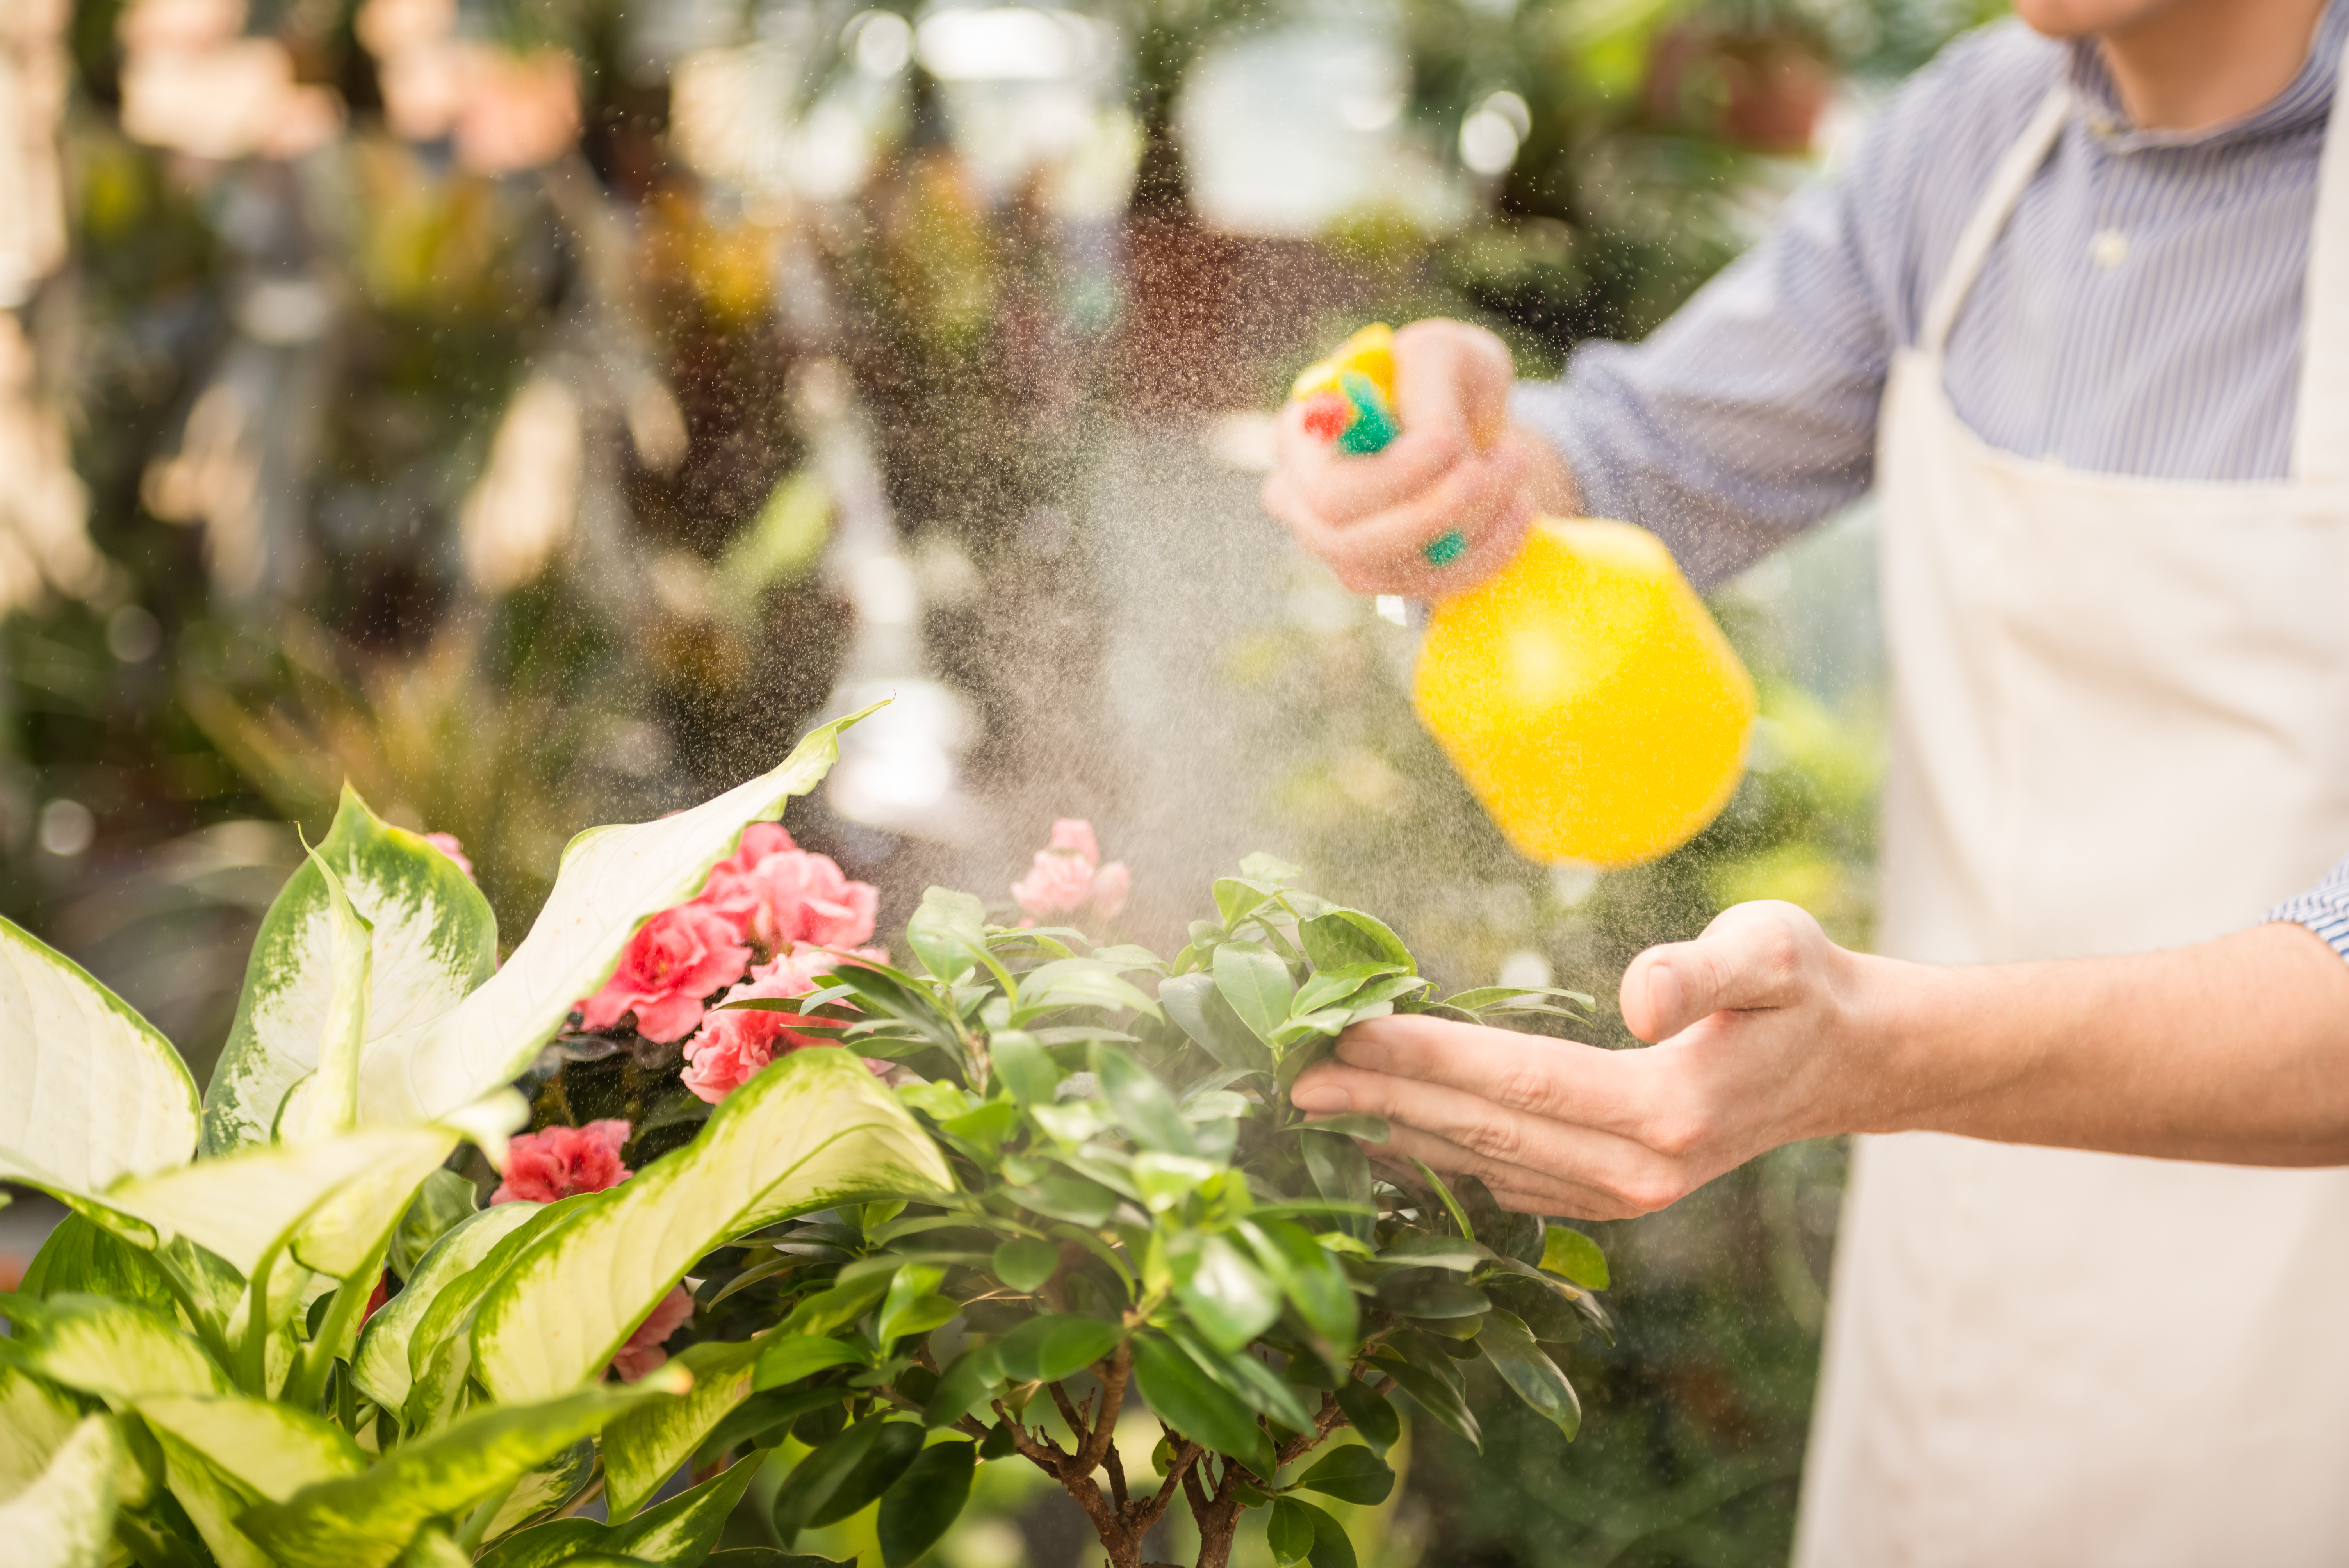 Remove Pesticides From Fruits & Vegetables